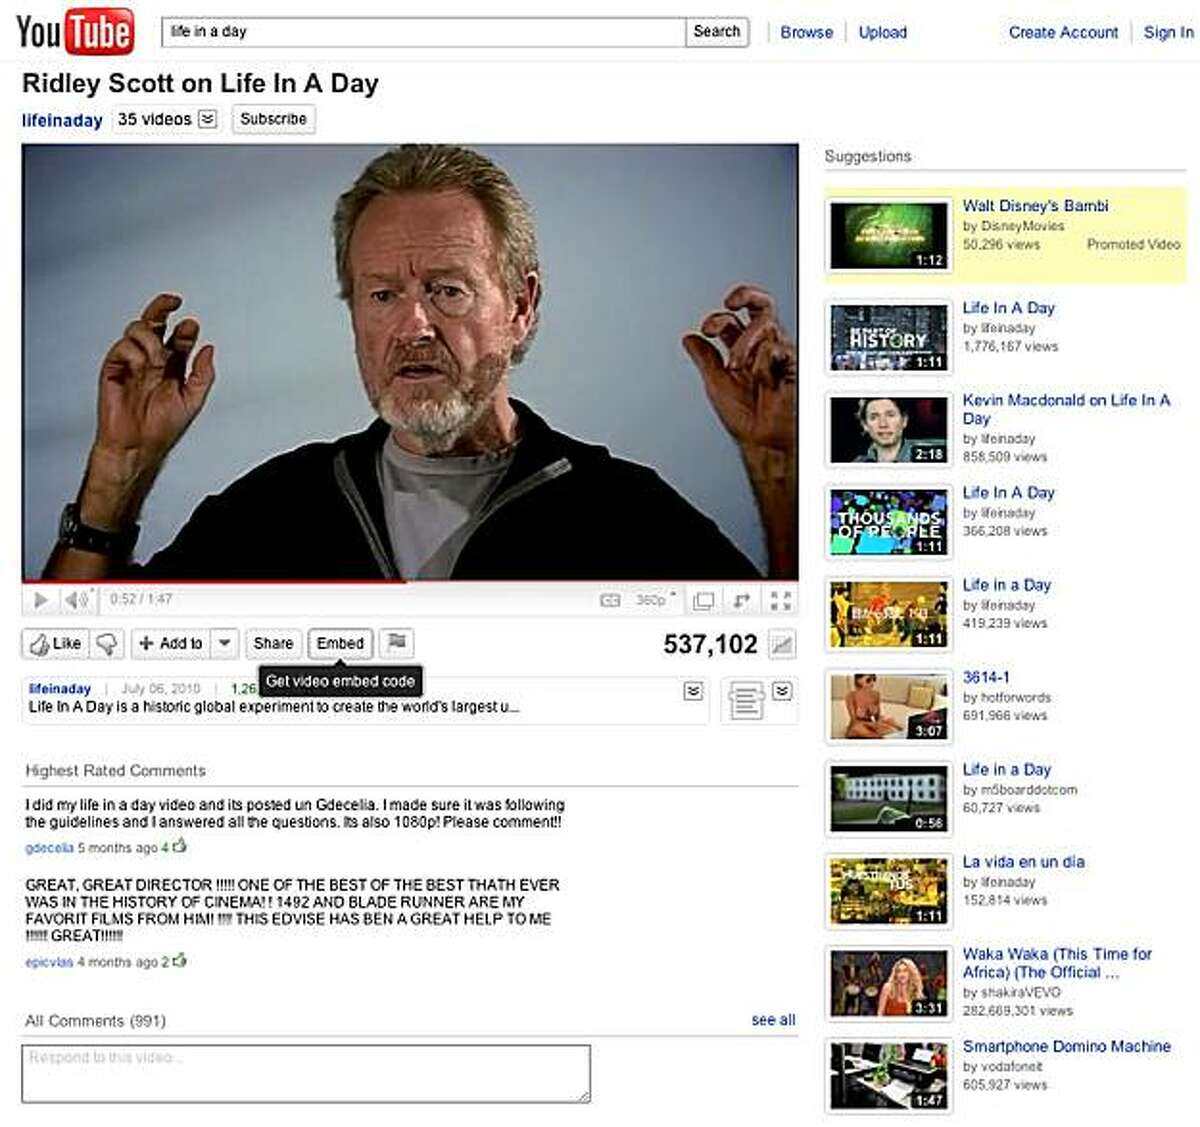 Screen shot of the Life in a day project posted on Youtube.com. Life in a day was directed by Kevin Macdonald and produced by Ridley Scott, who is shown in this video about the project.